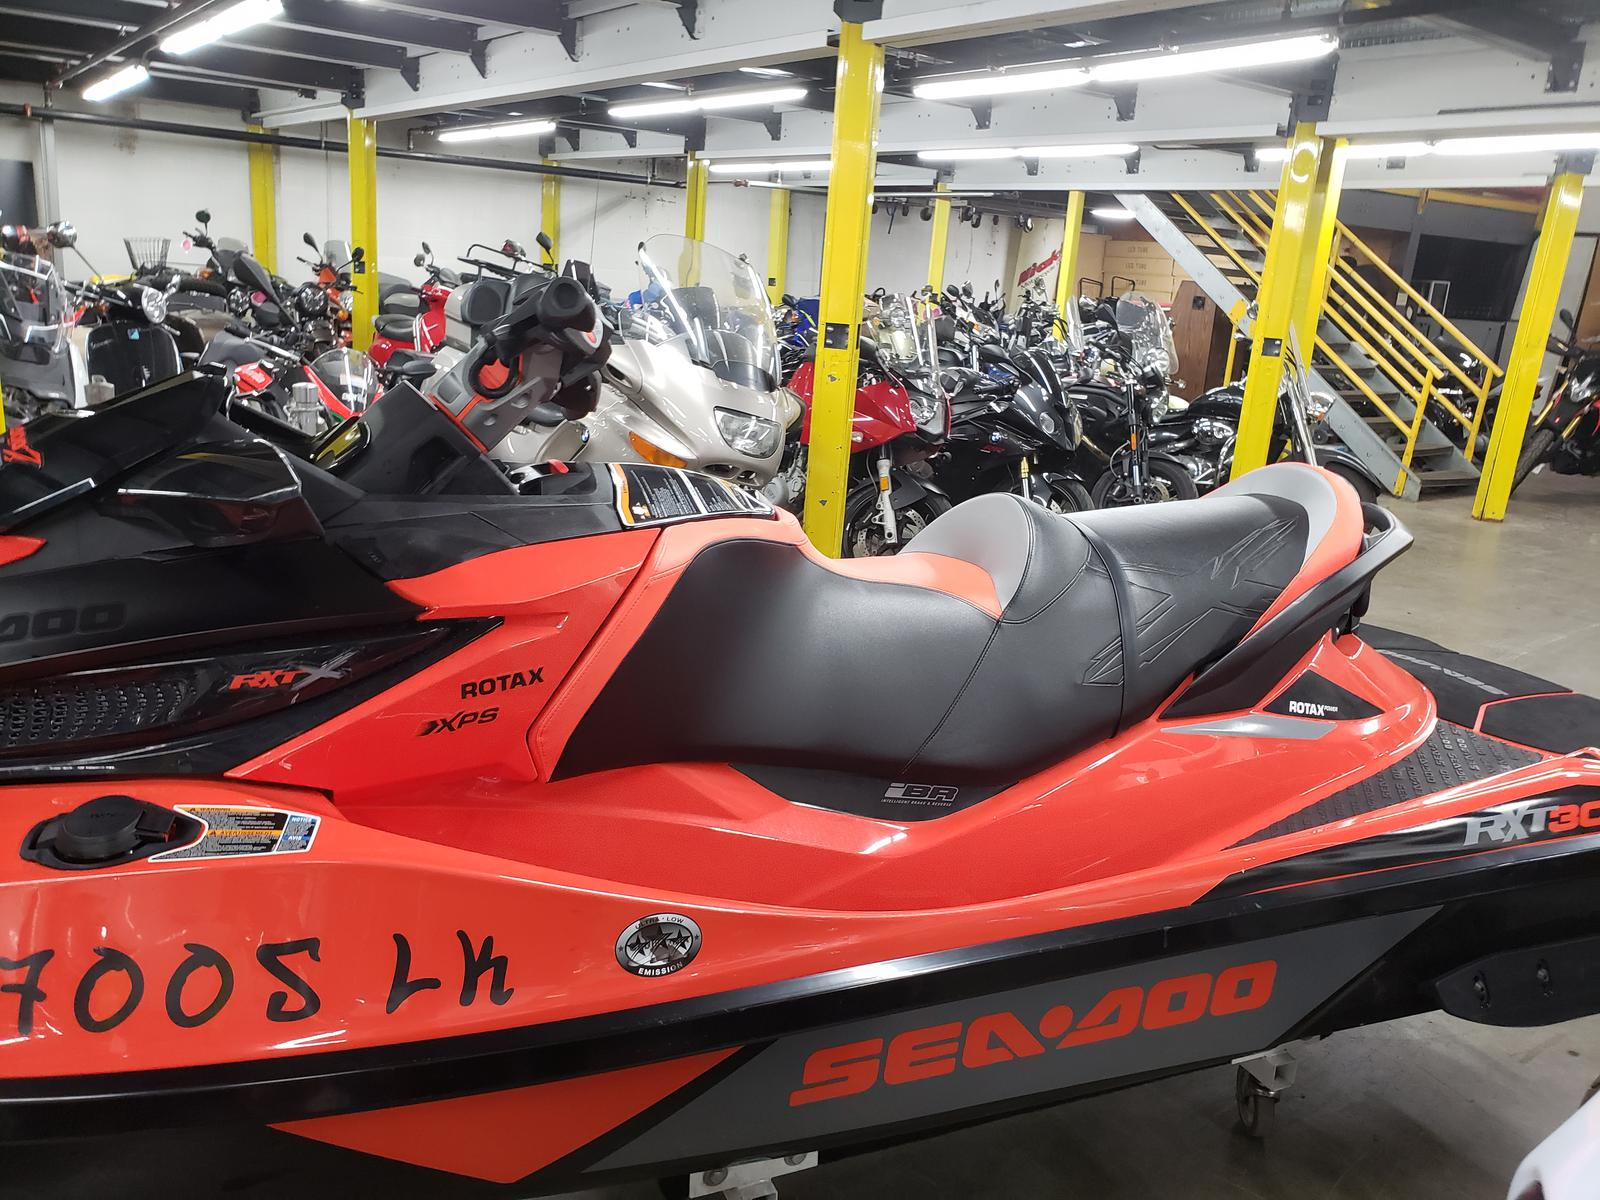 2016 Sea-Doo RXT-X 300 for sale in Lakeville, MN  Leo's